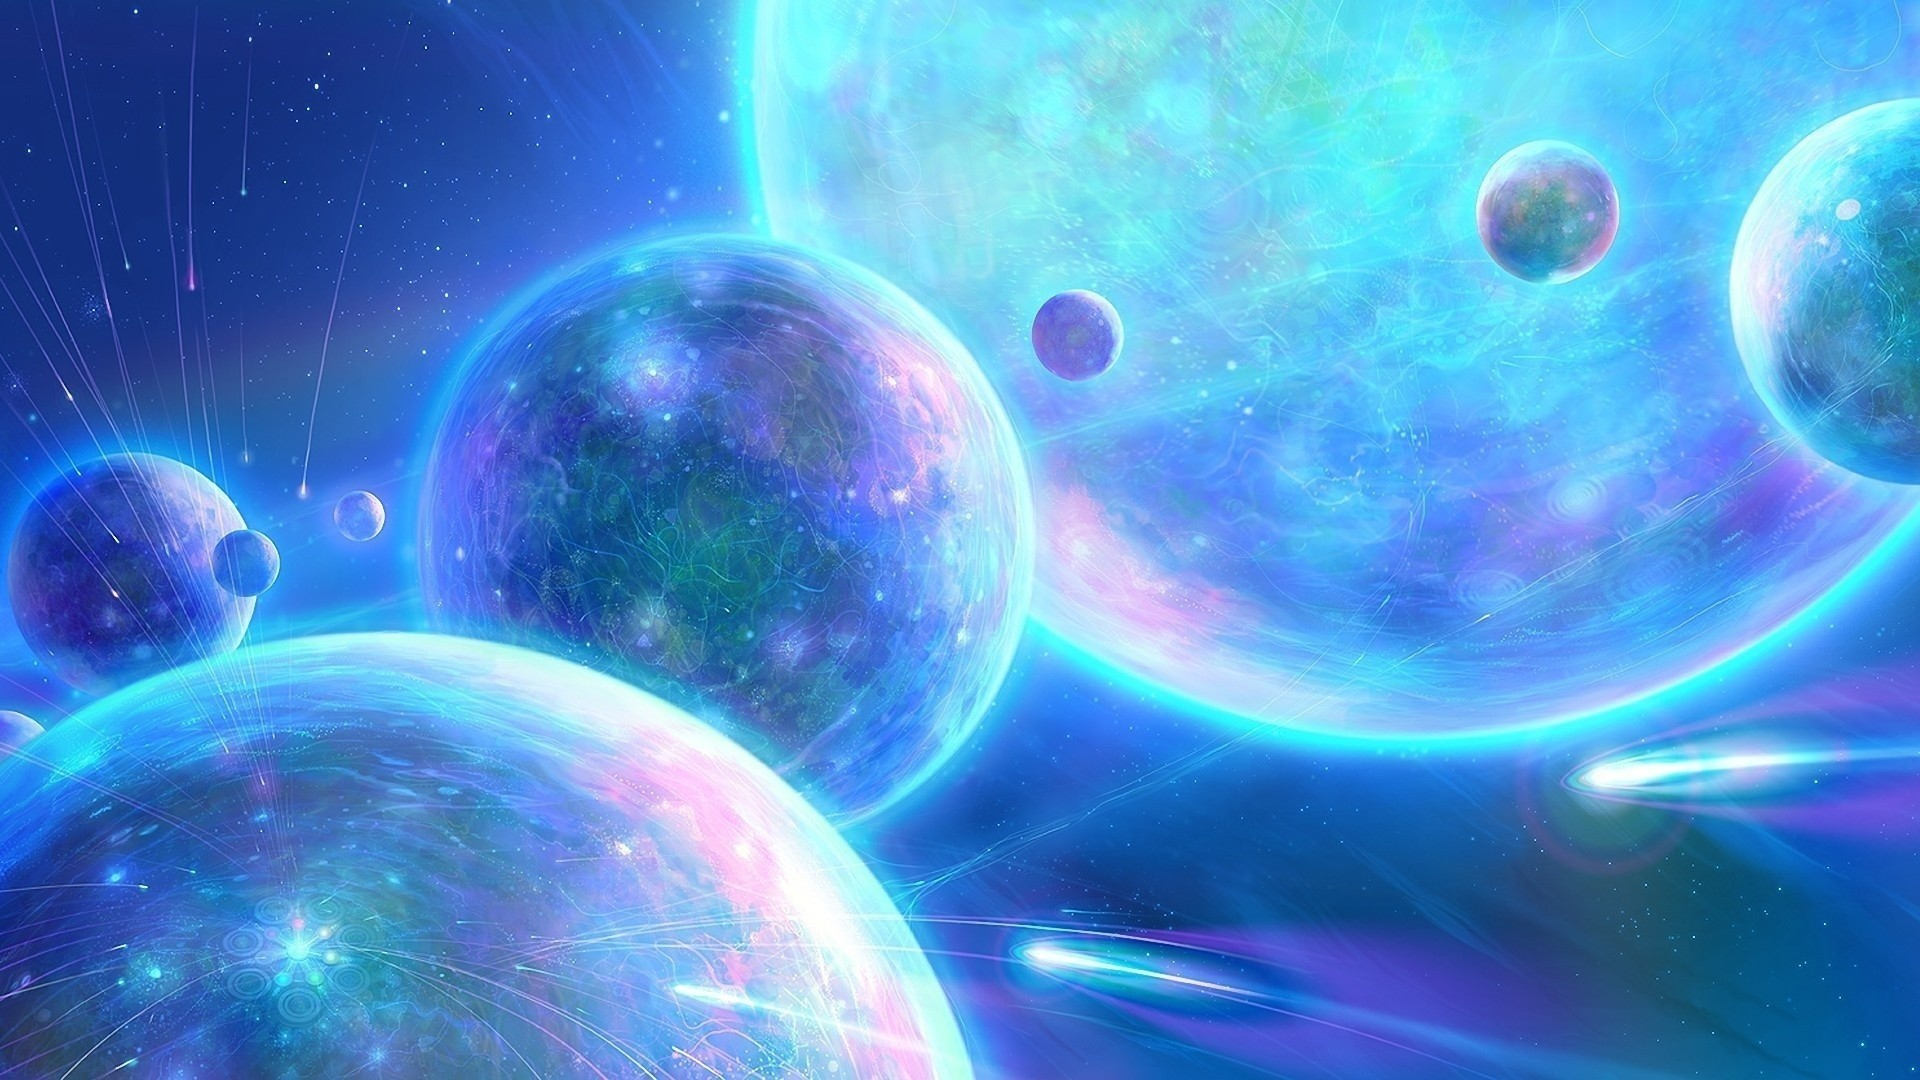 Gary Tonge Digital Art Outer Space Planets Wallpaper